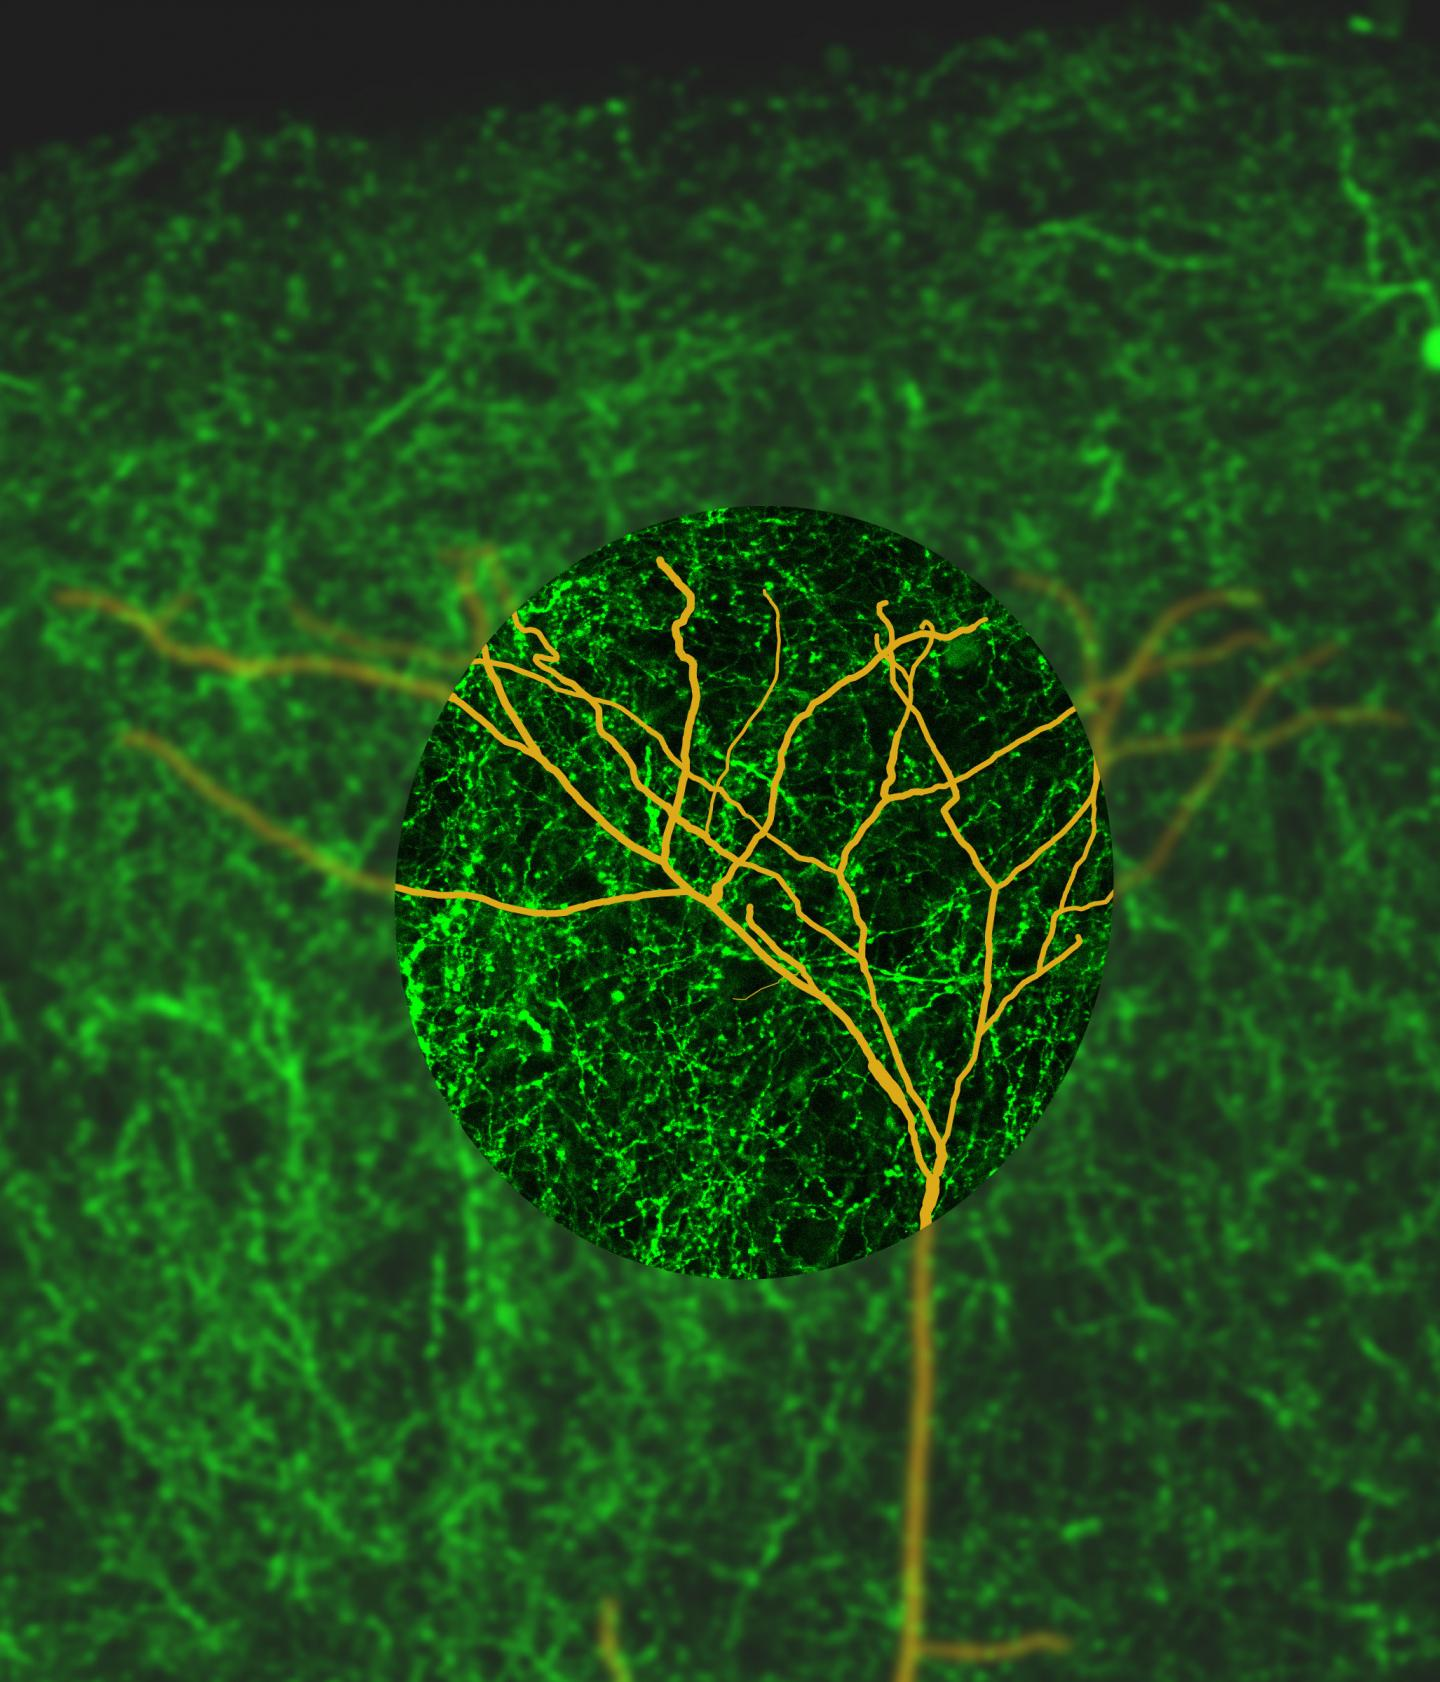 Distal Dendrites Amongst a Sea of Cholinergic Axons